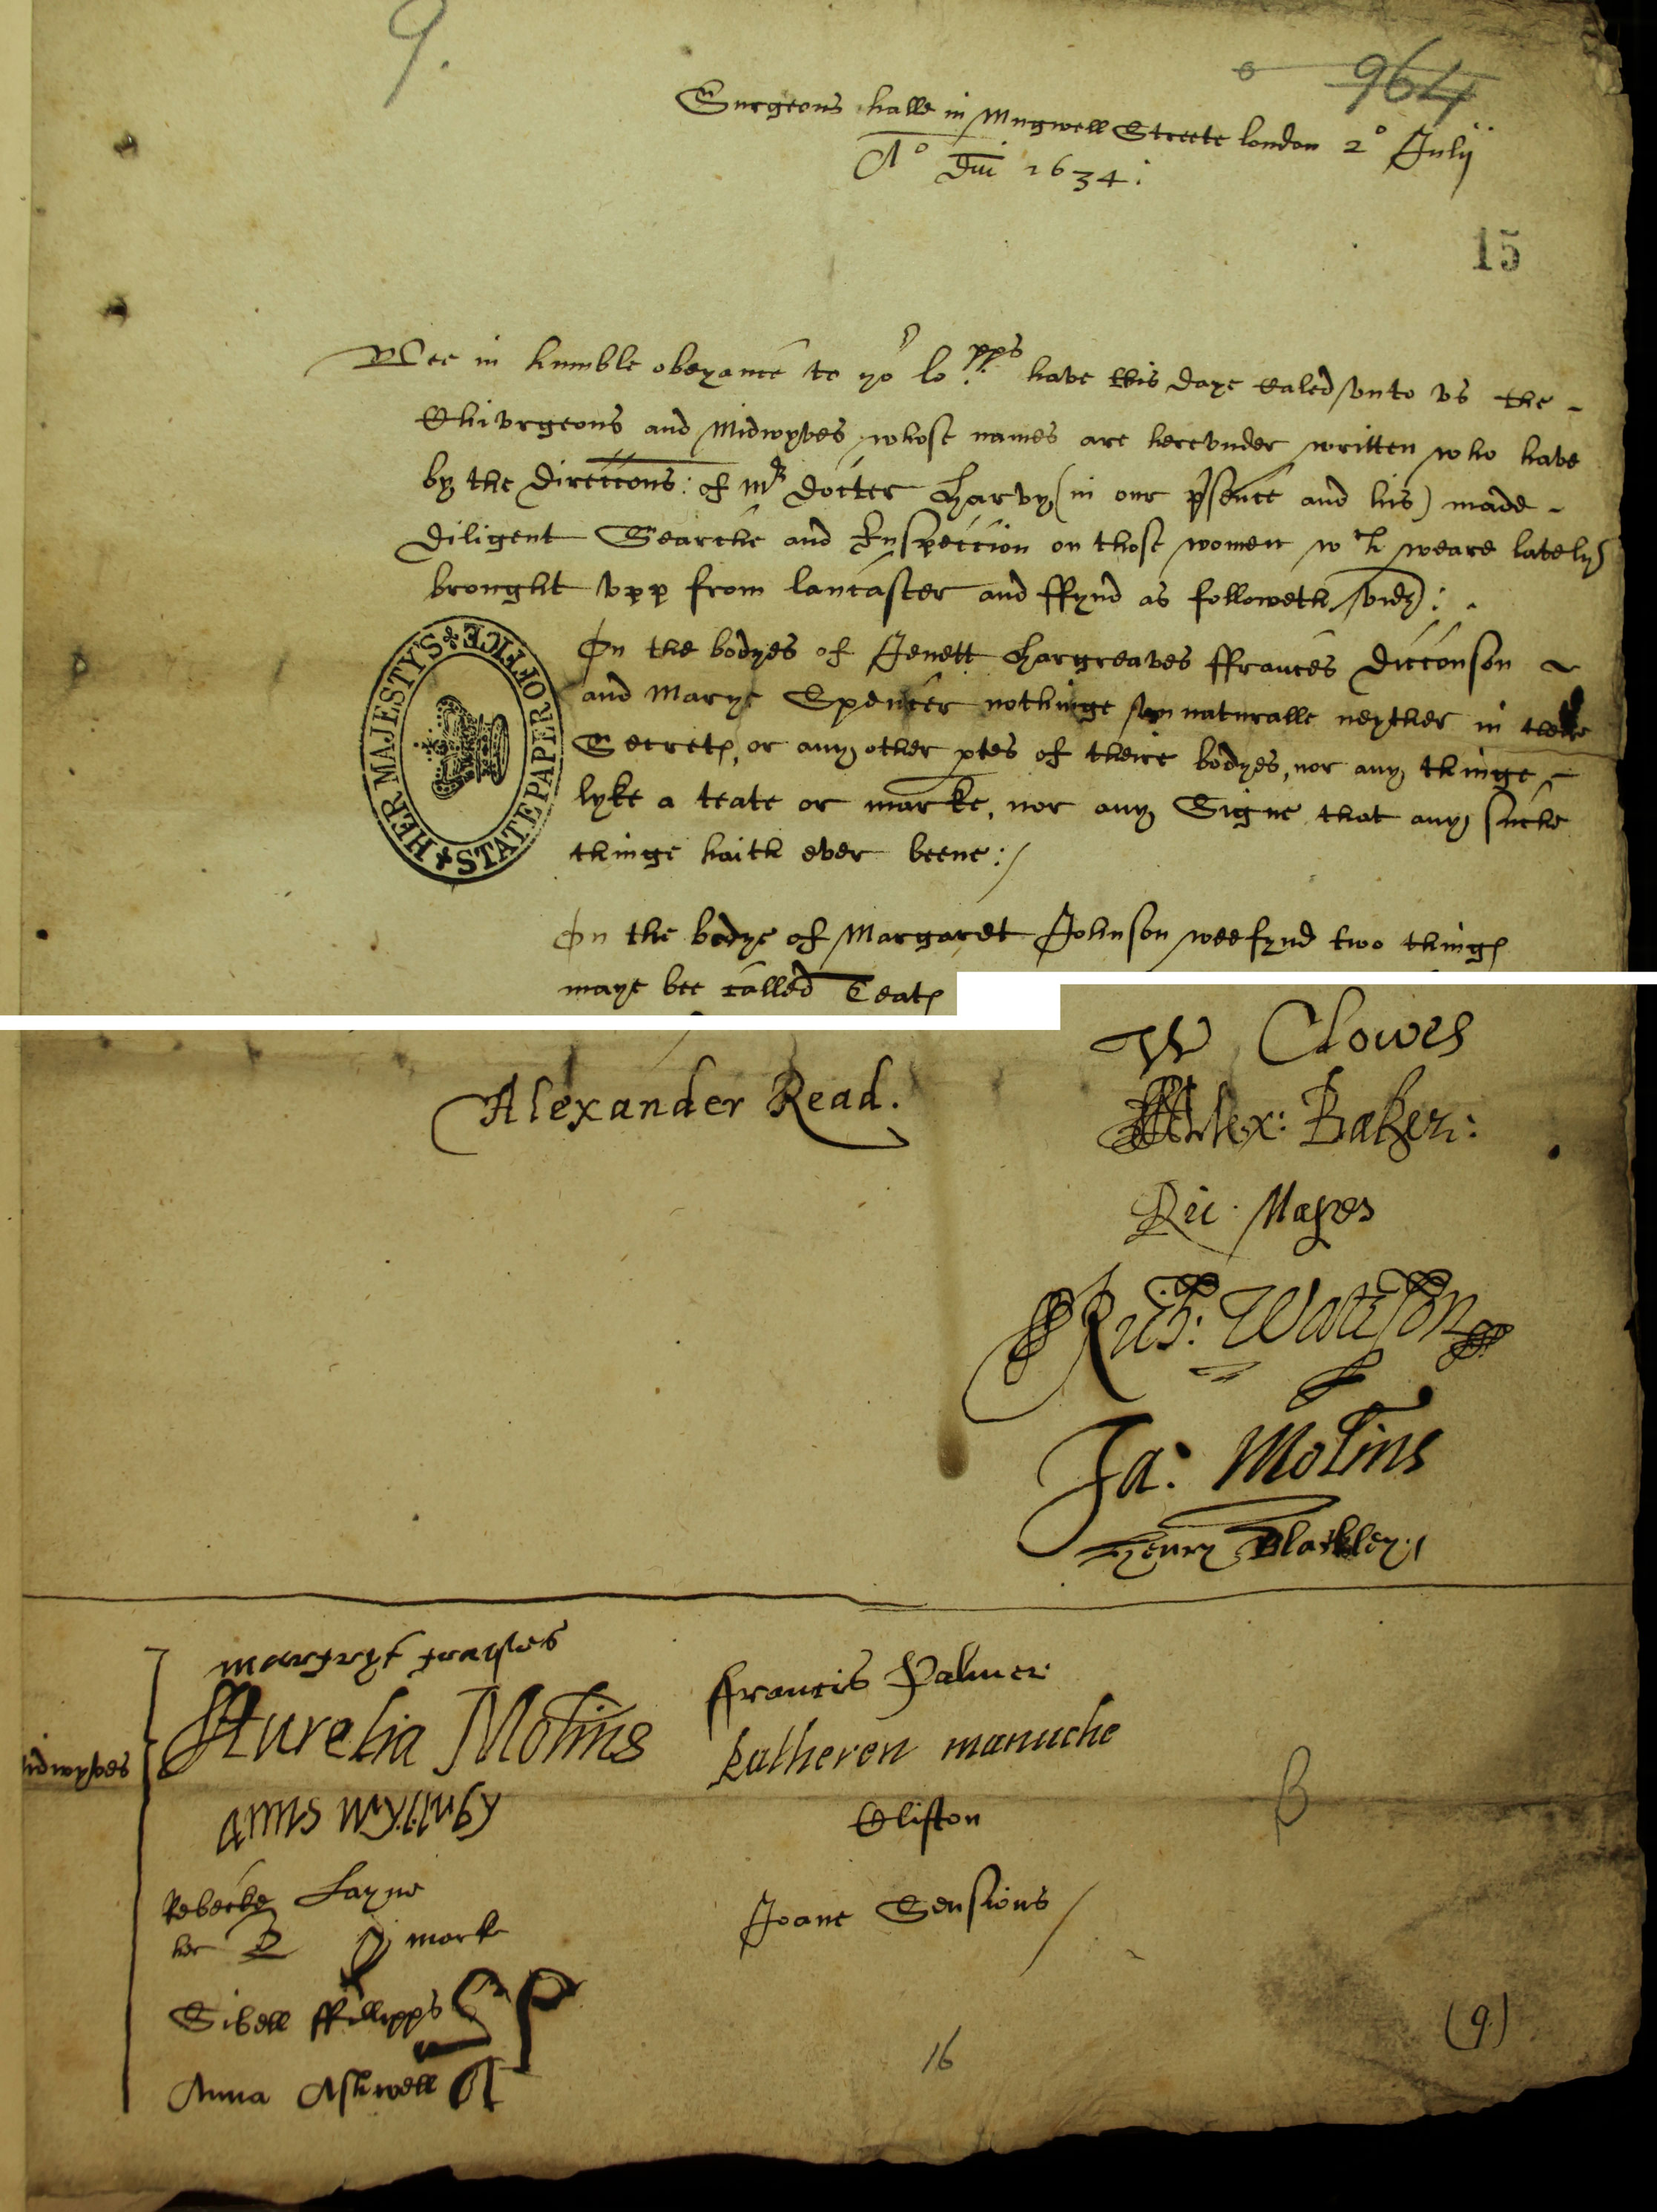 The Lancaster Witches: certificate of surgeons and midwives, SP 16/271 f.15